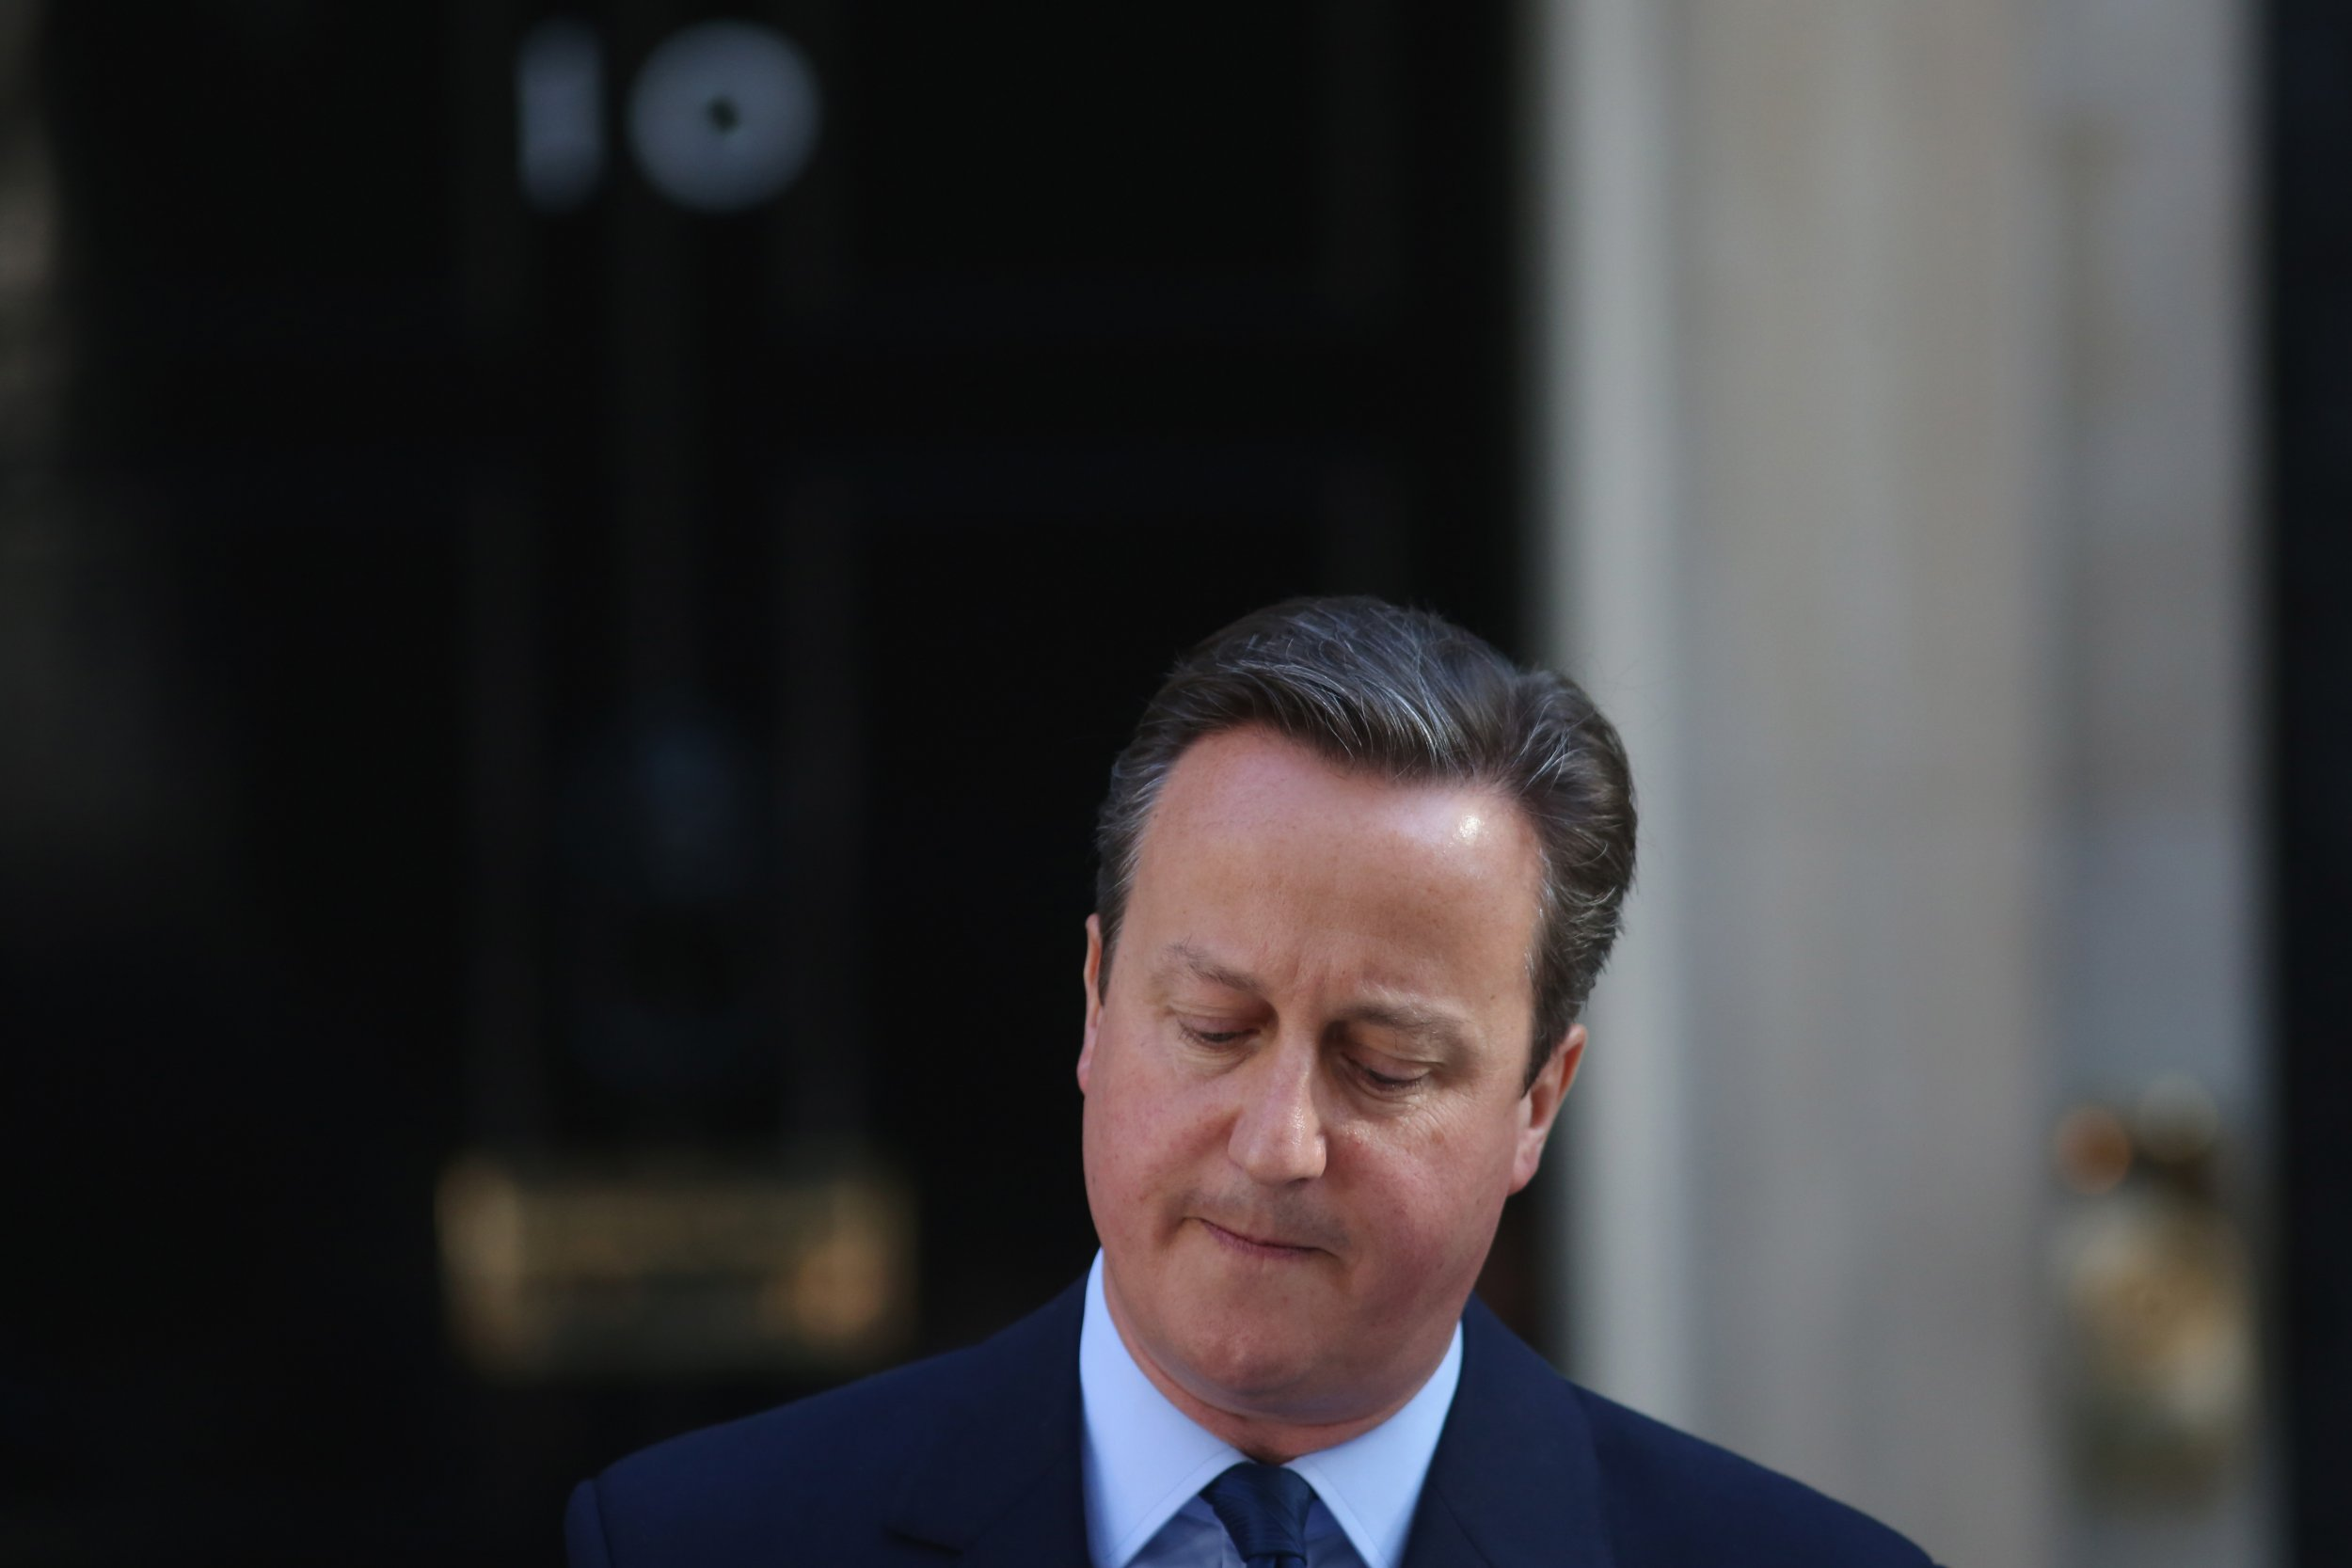 David Cameron resignation speech